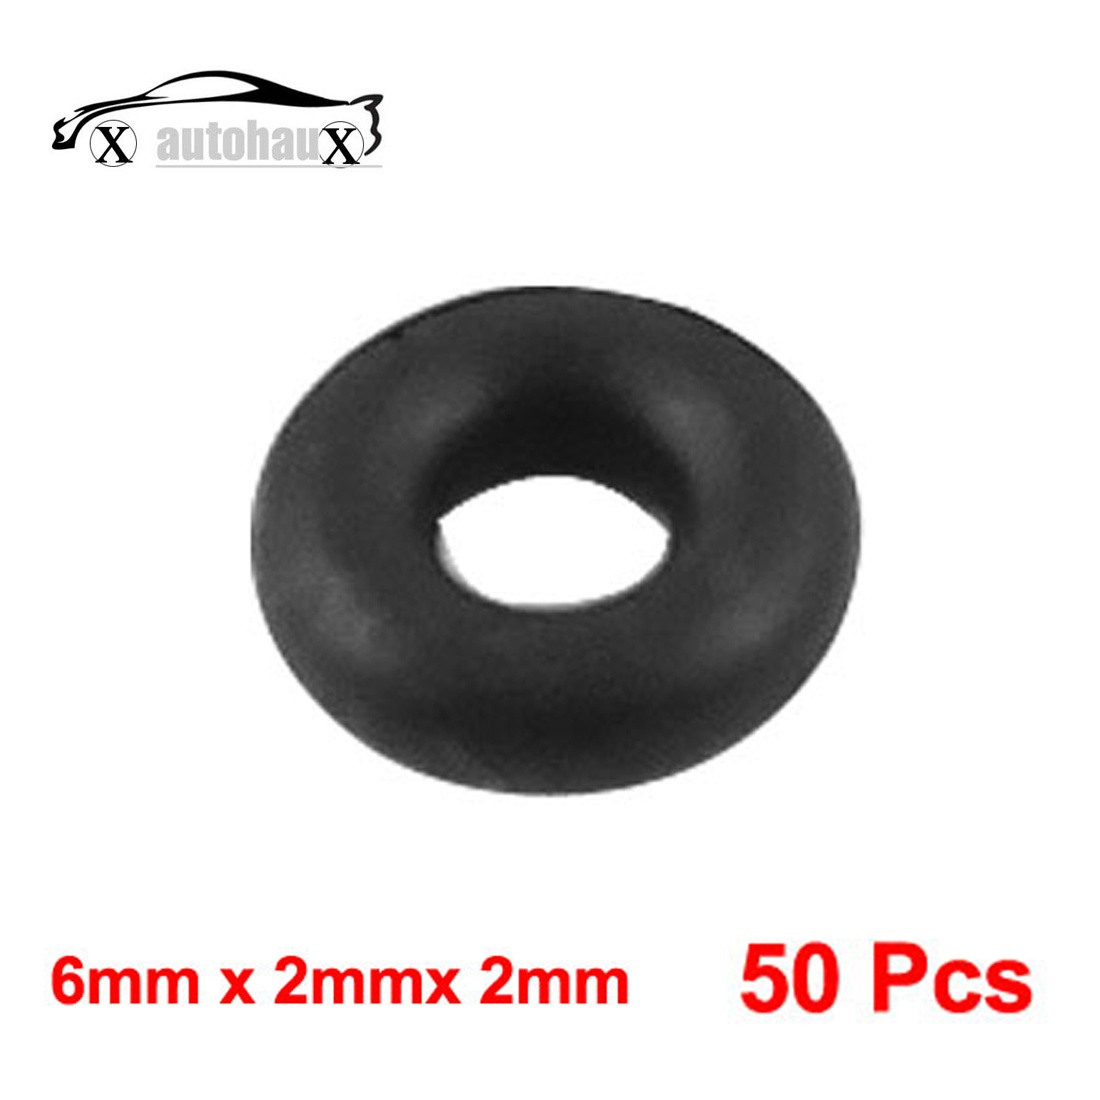 X AUTOHAUX 10pcs Green Universal Rubber O-Ring Sealing ... on